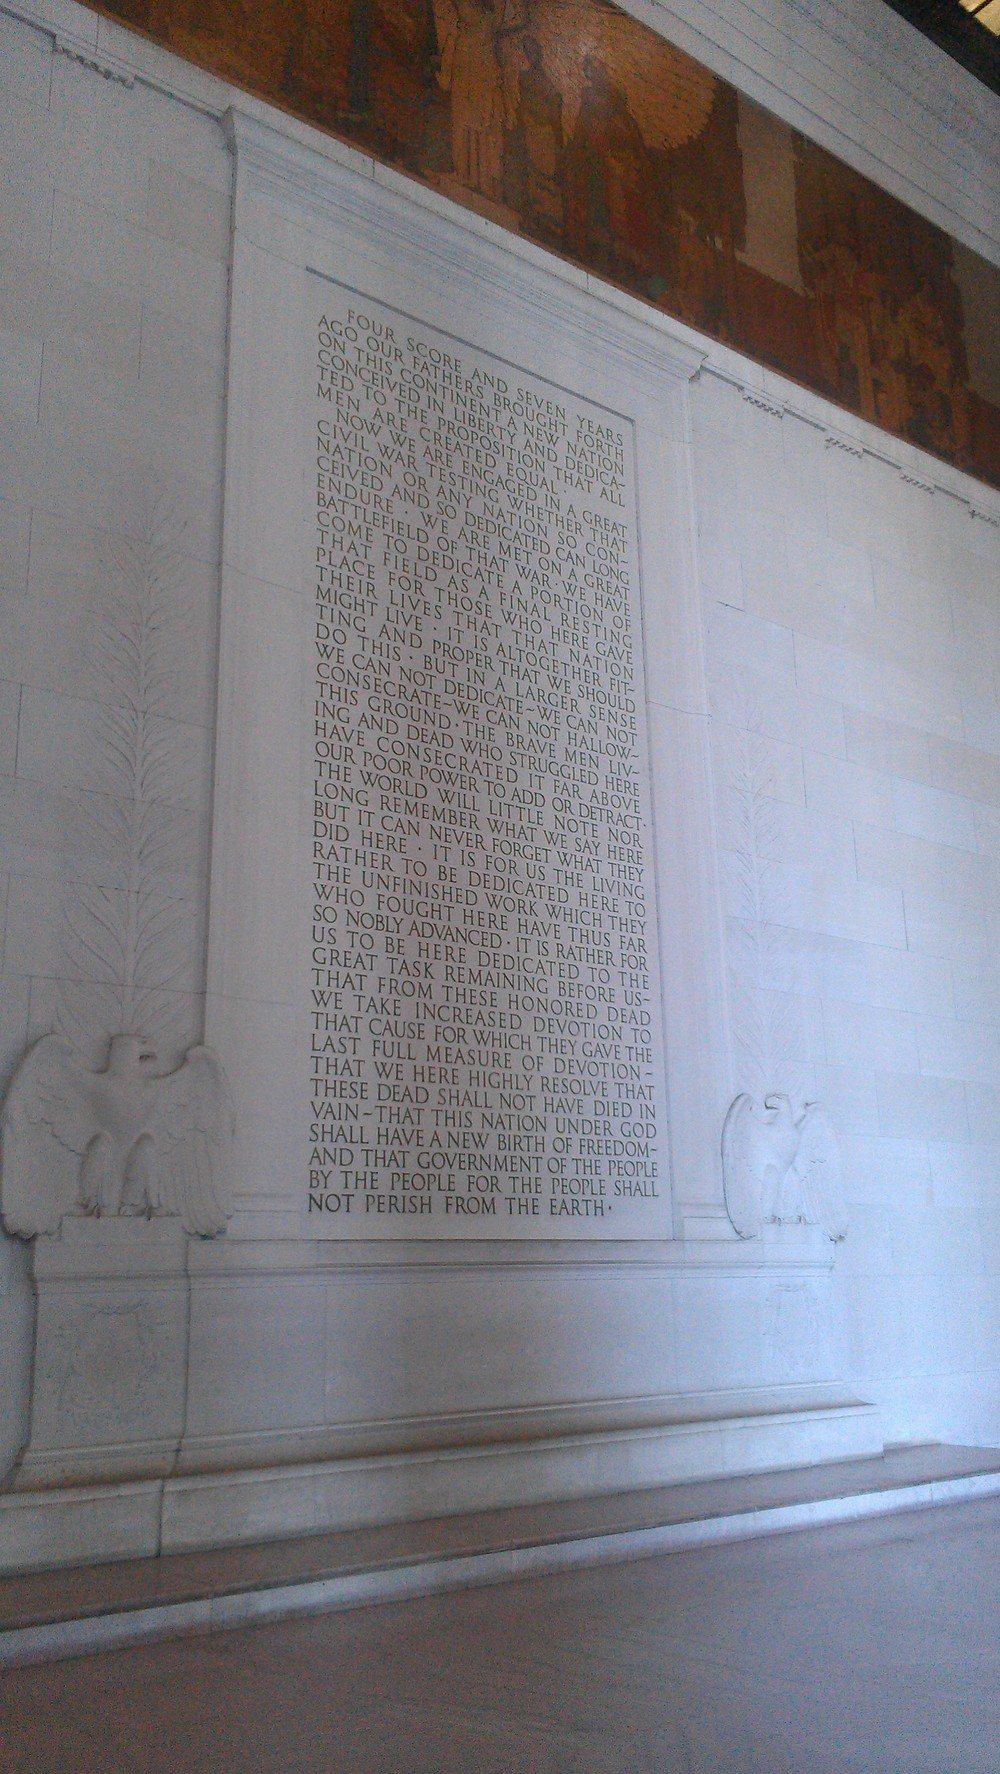 Gettysburg Address on the wall